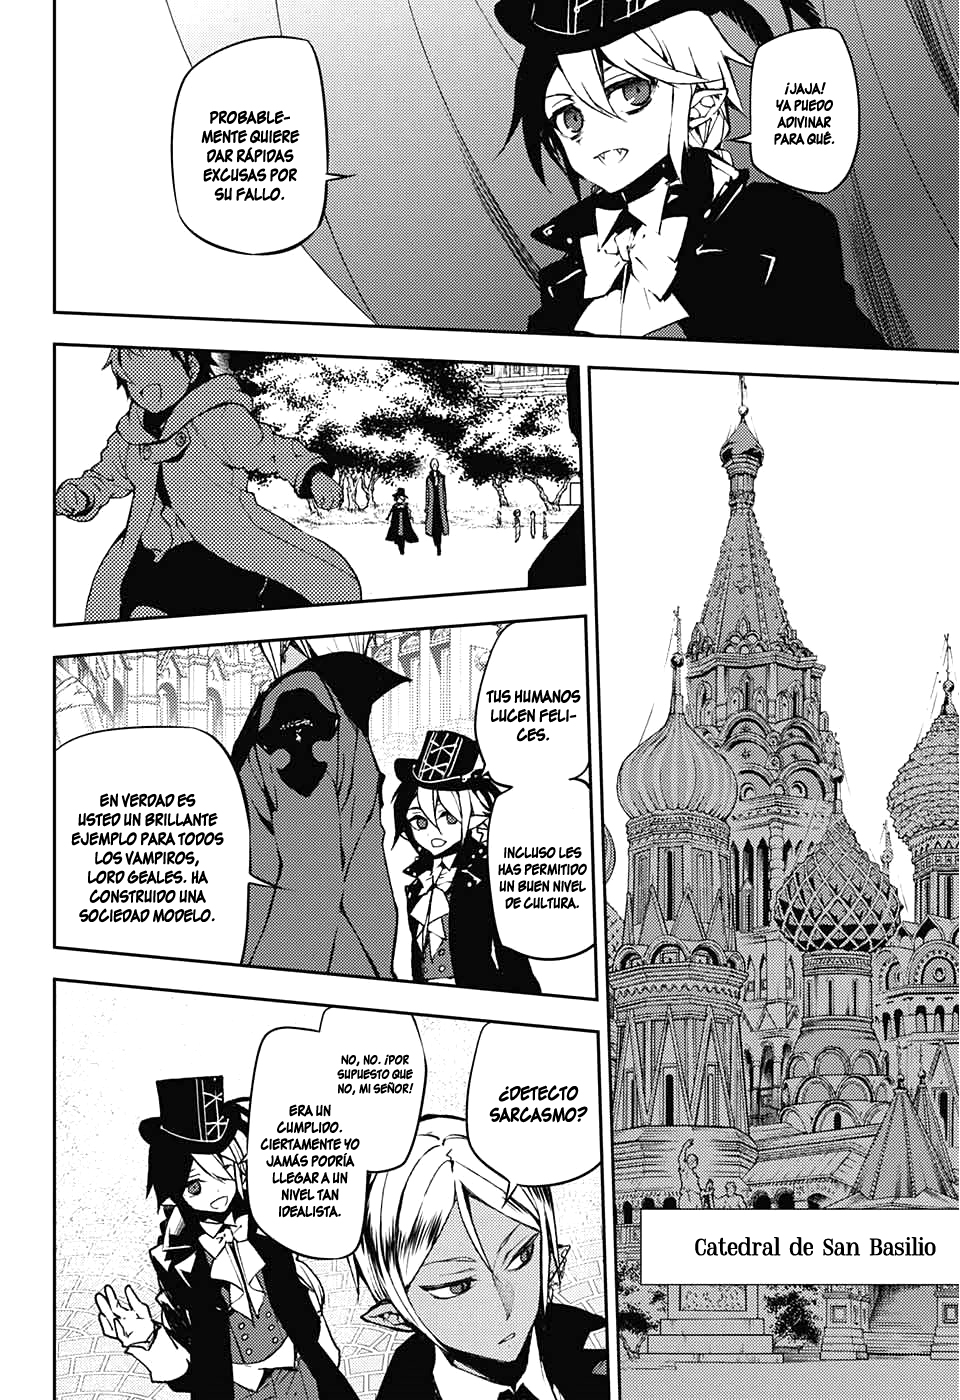 http://c5.ninemanga.com/es_manga/49/3057/445397/06b993d01417d43f1d3c125d94e0433d.jpg Page 9